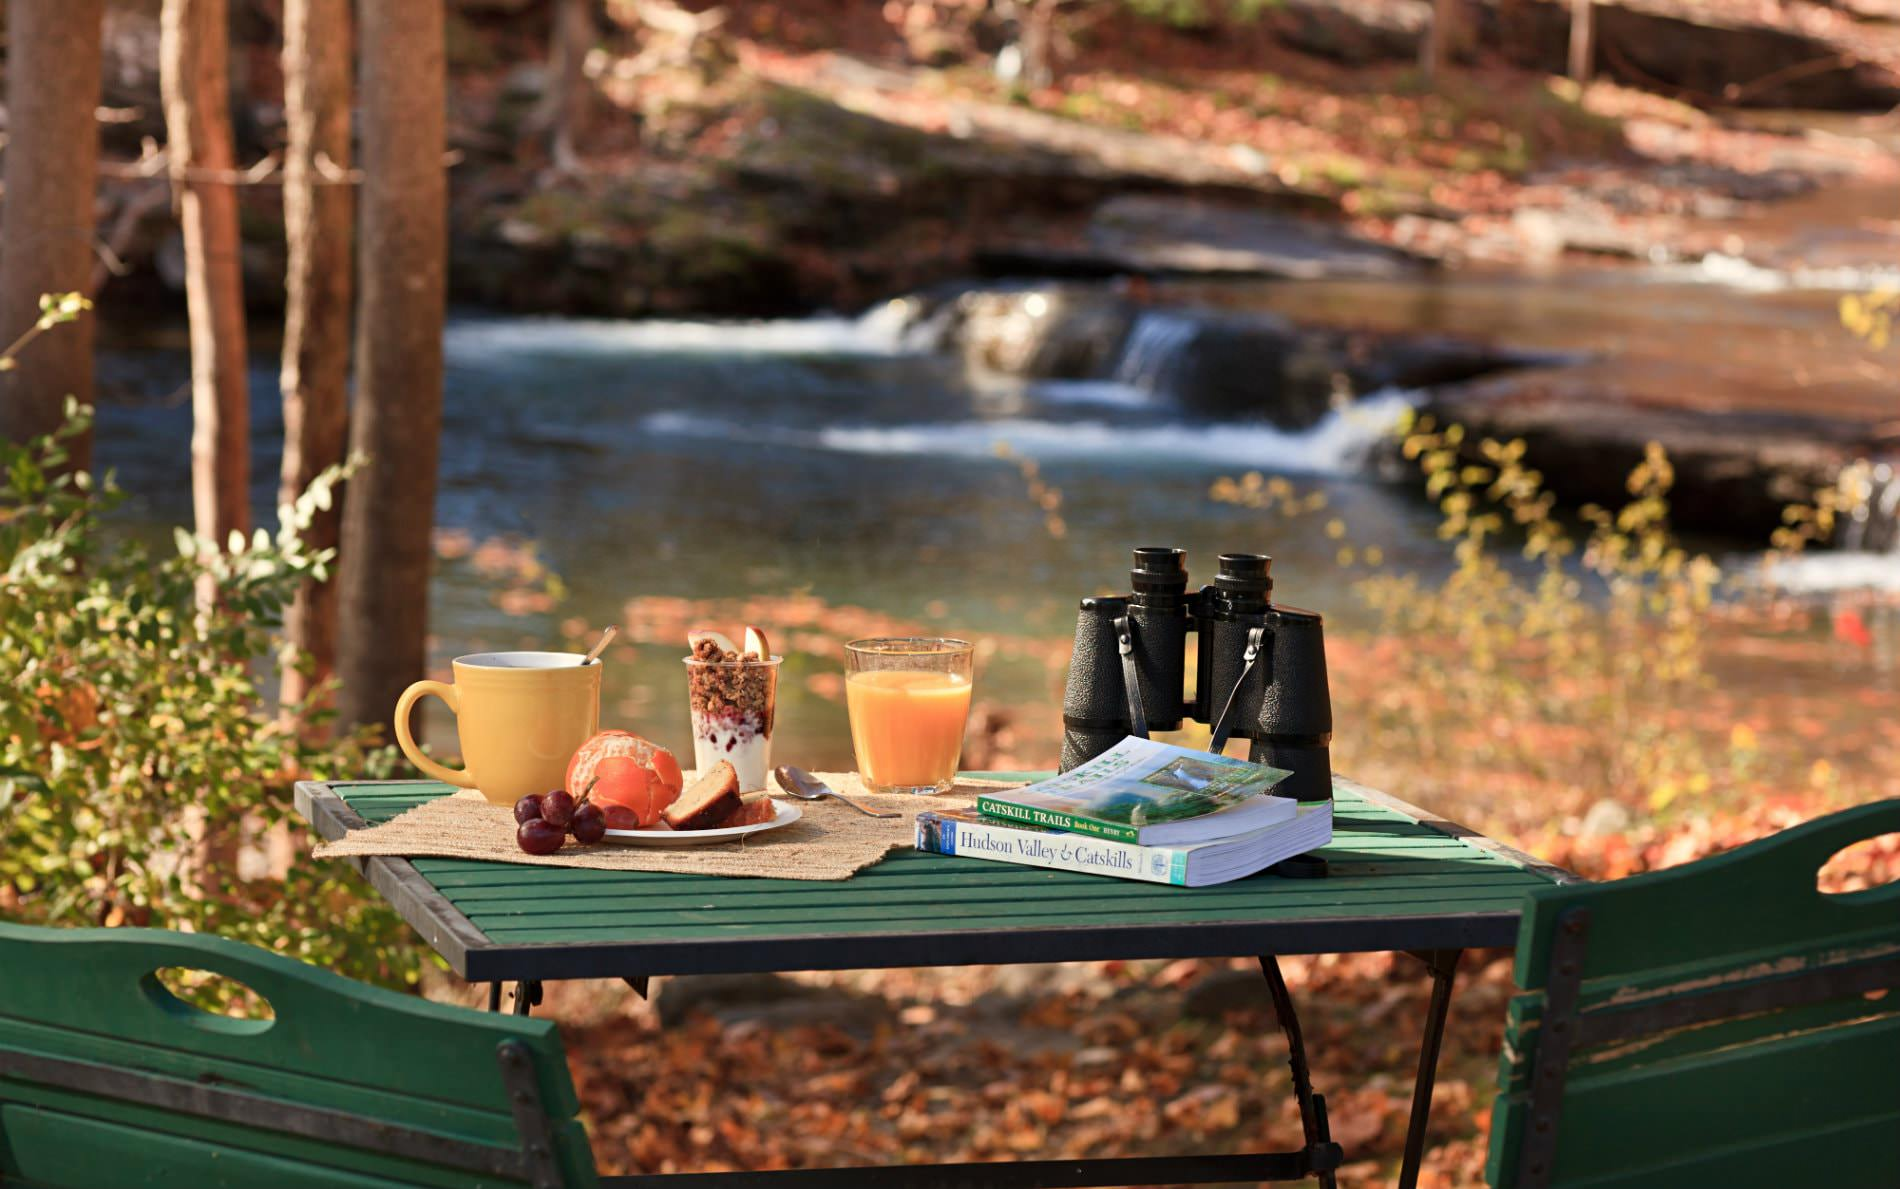 Green table topped with a mug, yogurt and granola, glass of juice, fresh fruit, binoculars, in front of rippling stream